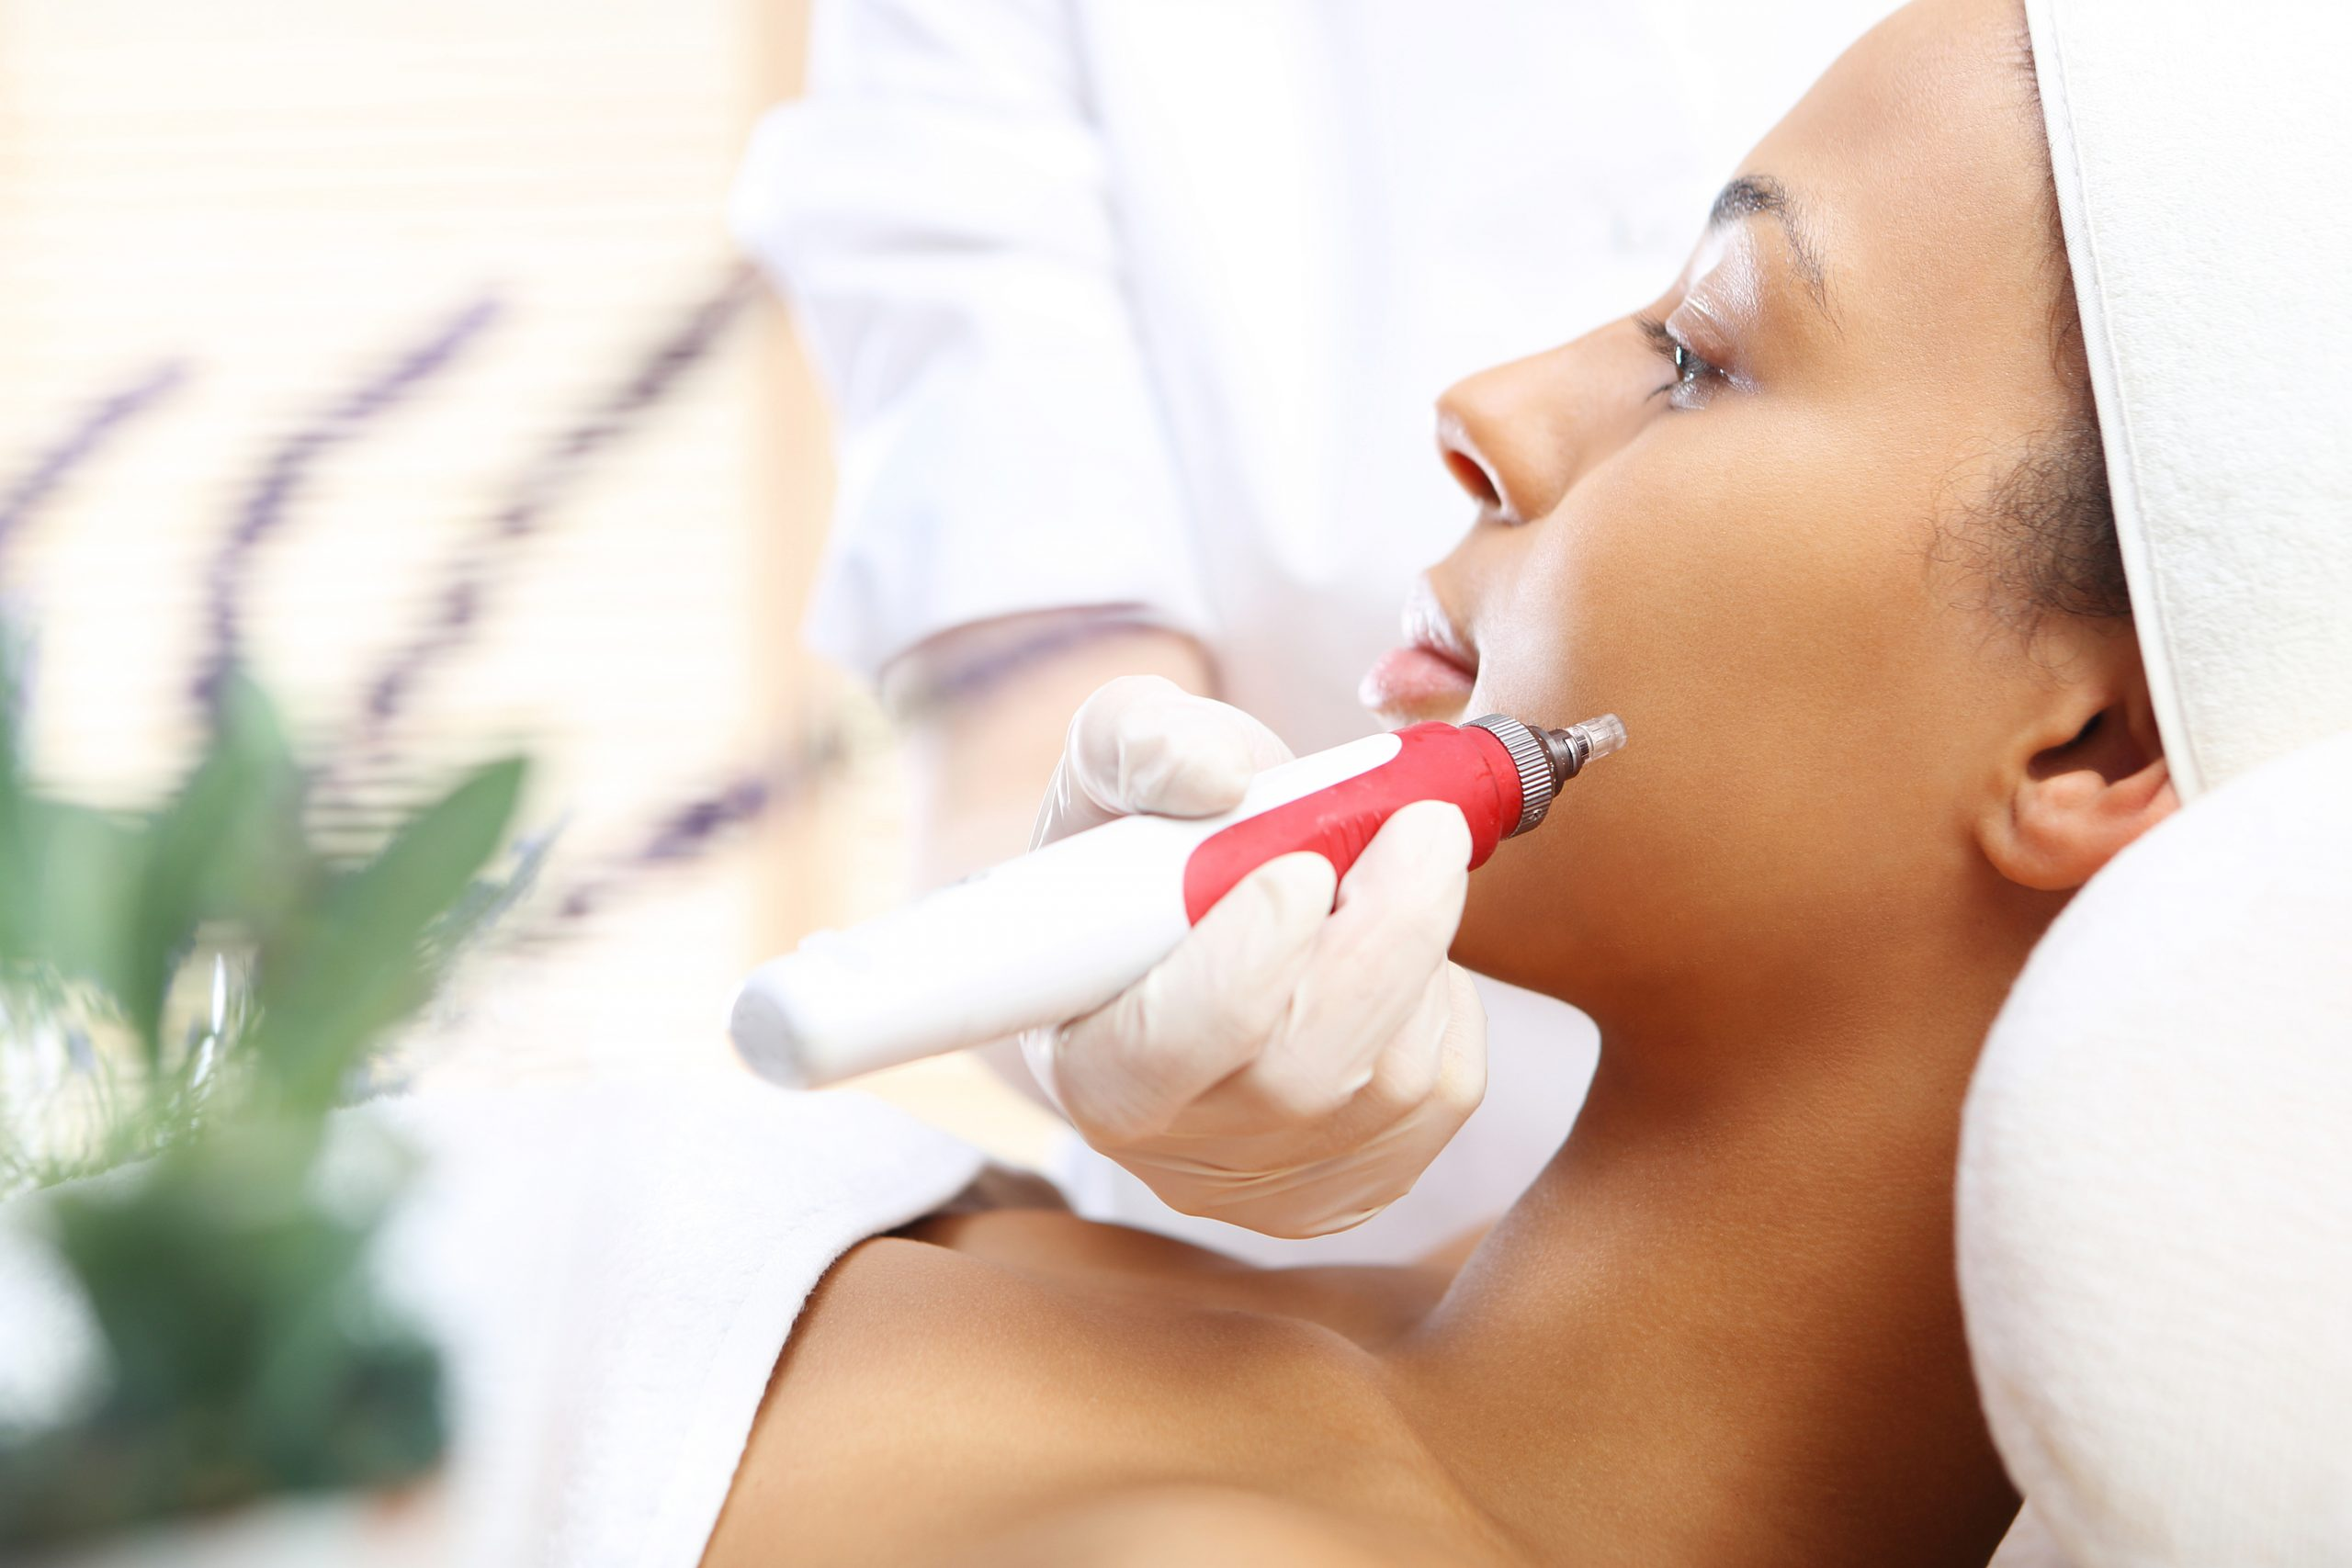 doctor applying microneedling treatment to female patient's face